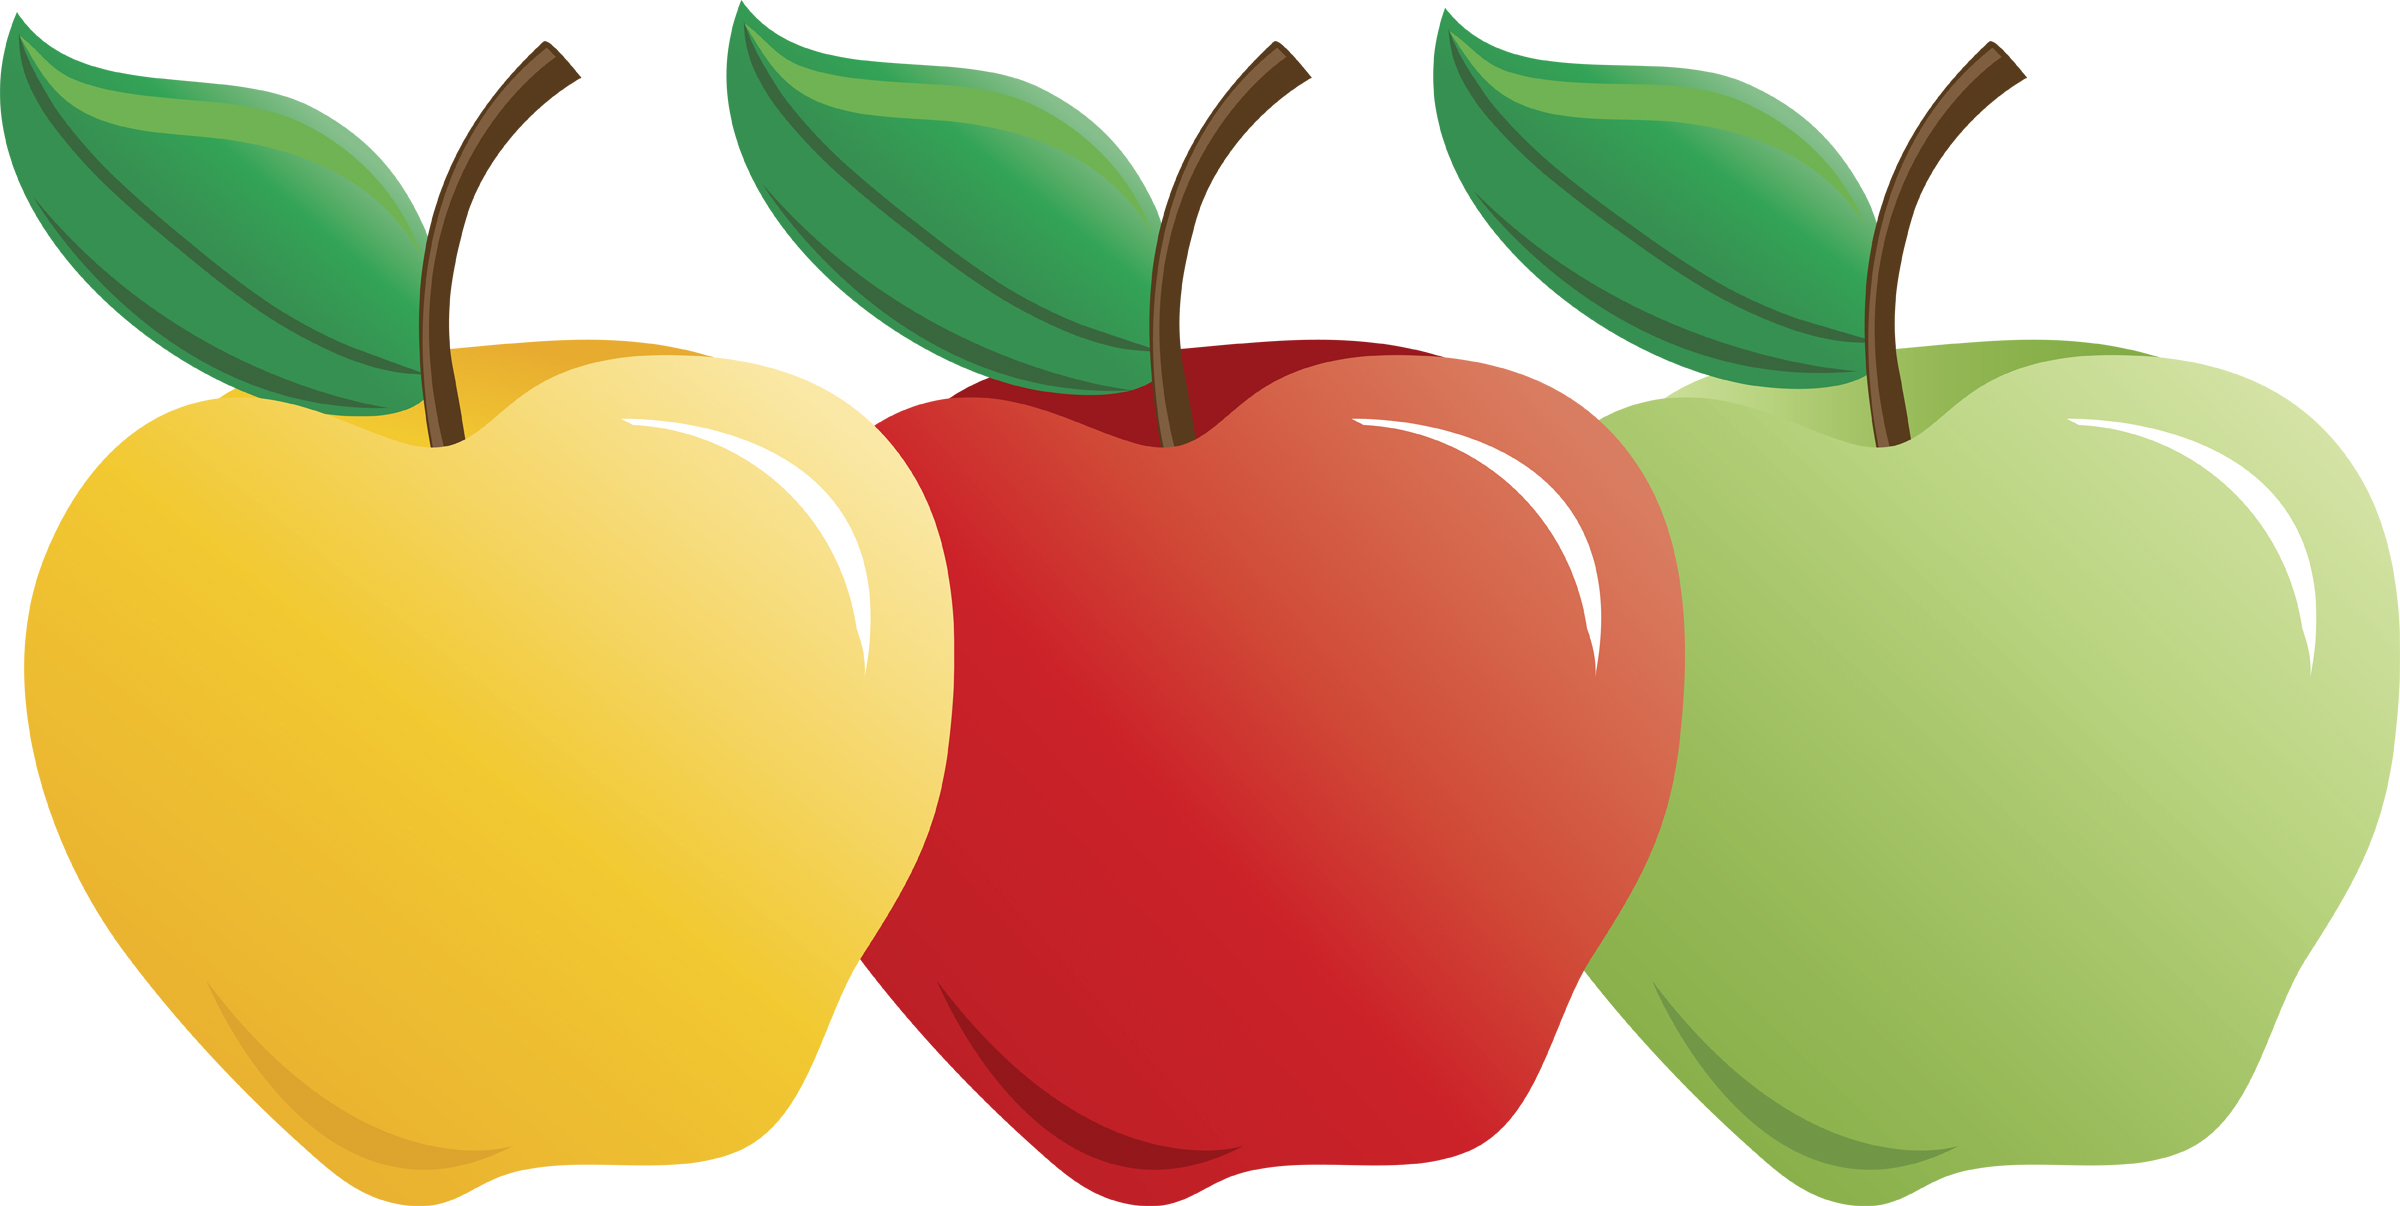 Apples clipart 3 » Clipart Station